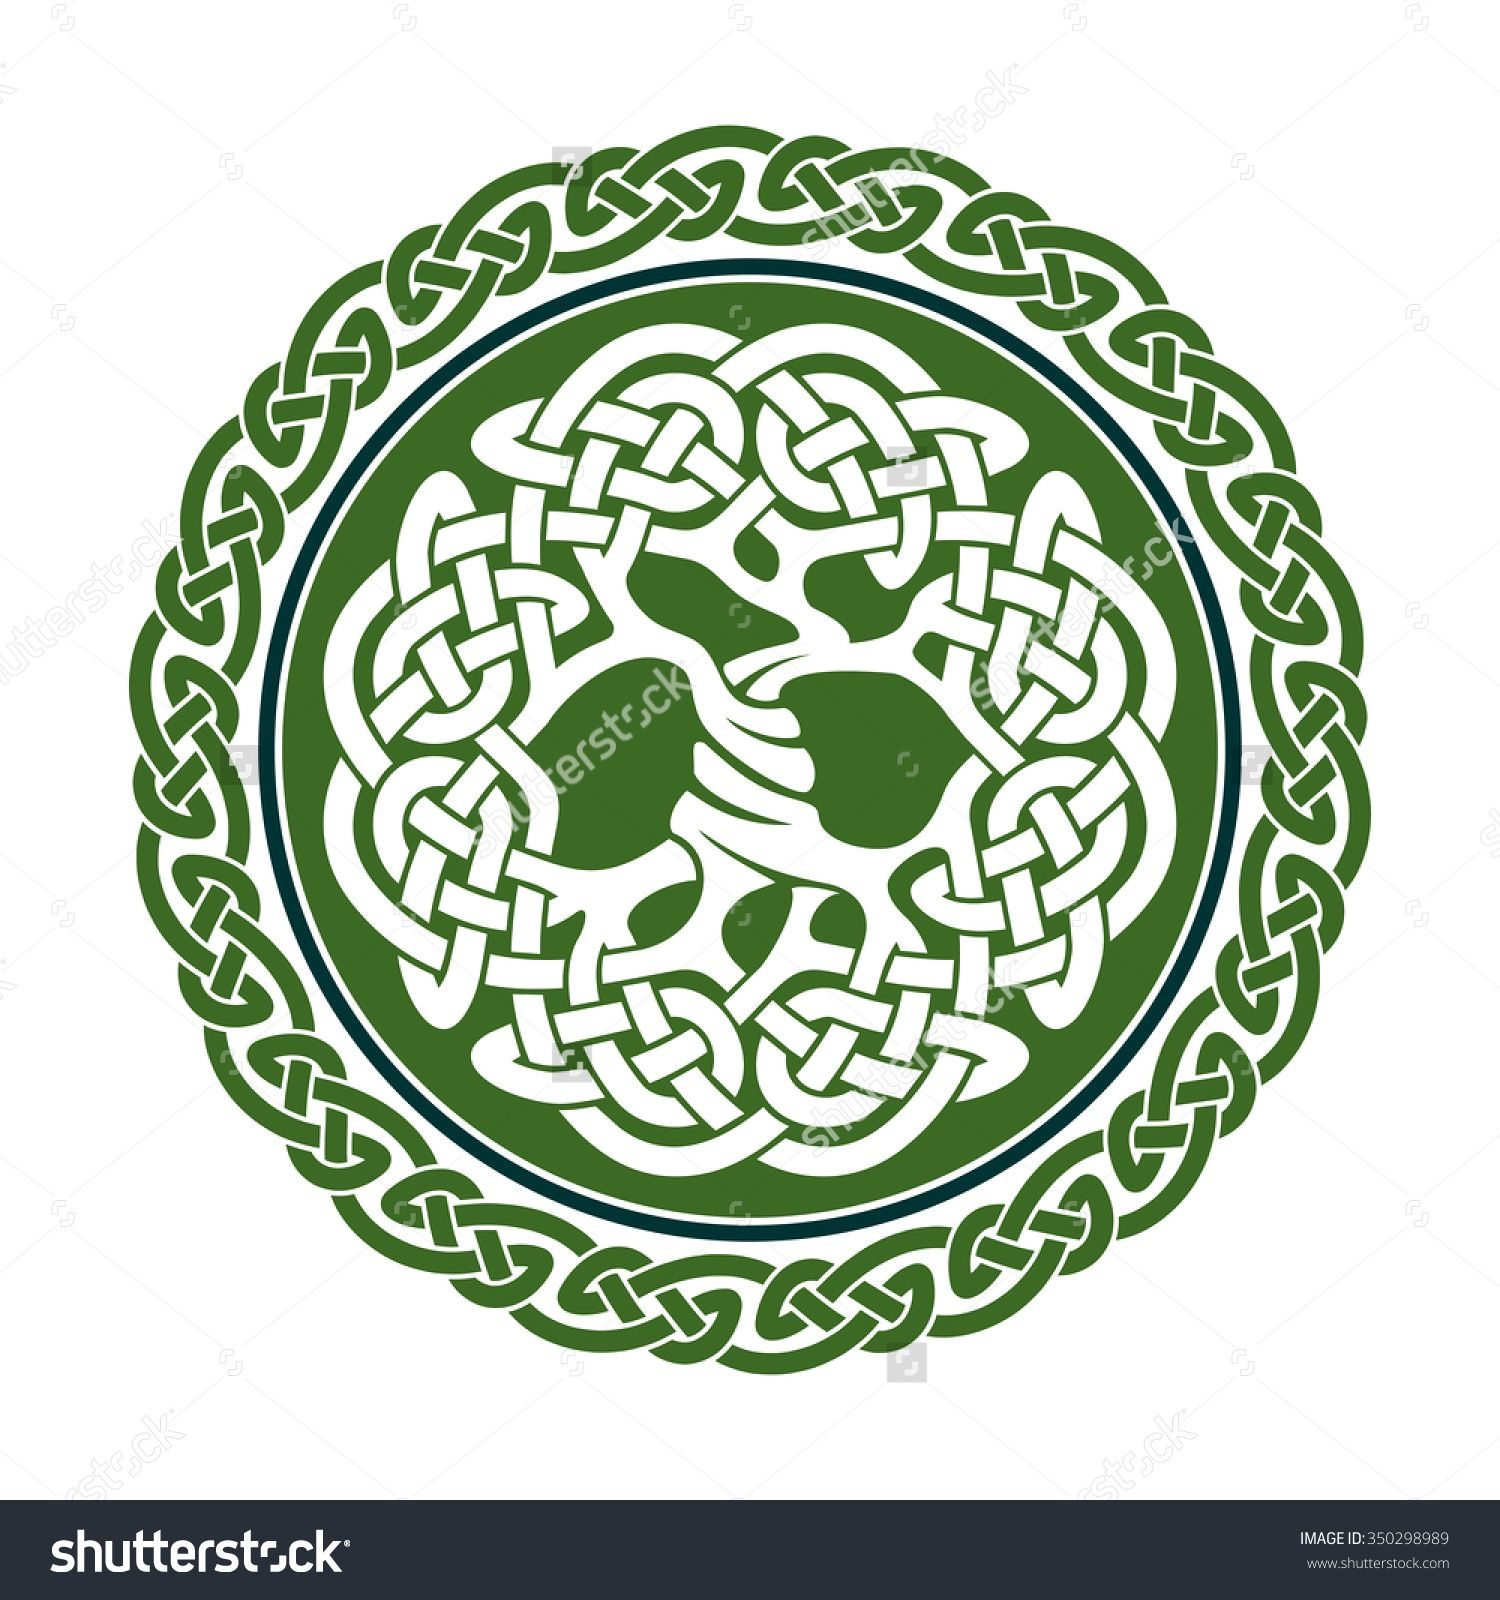 1500x1600 Vector Illustration Of Celtic Tree Of Life, Famous Tree Yggdrasil